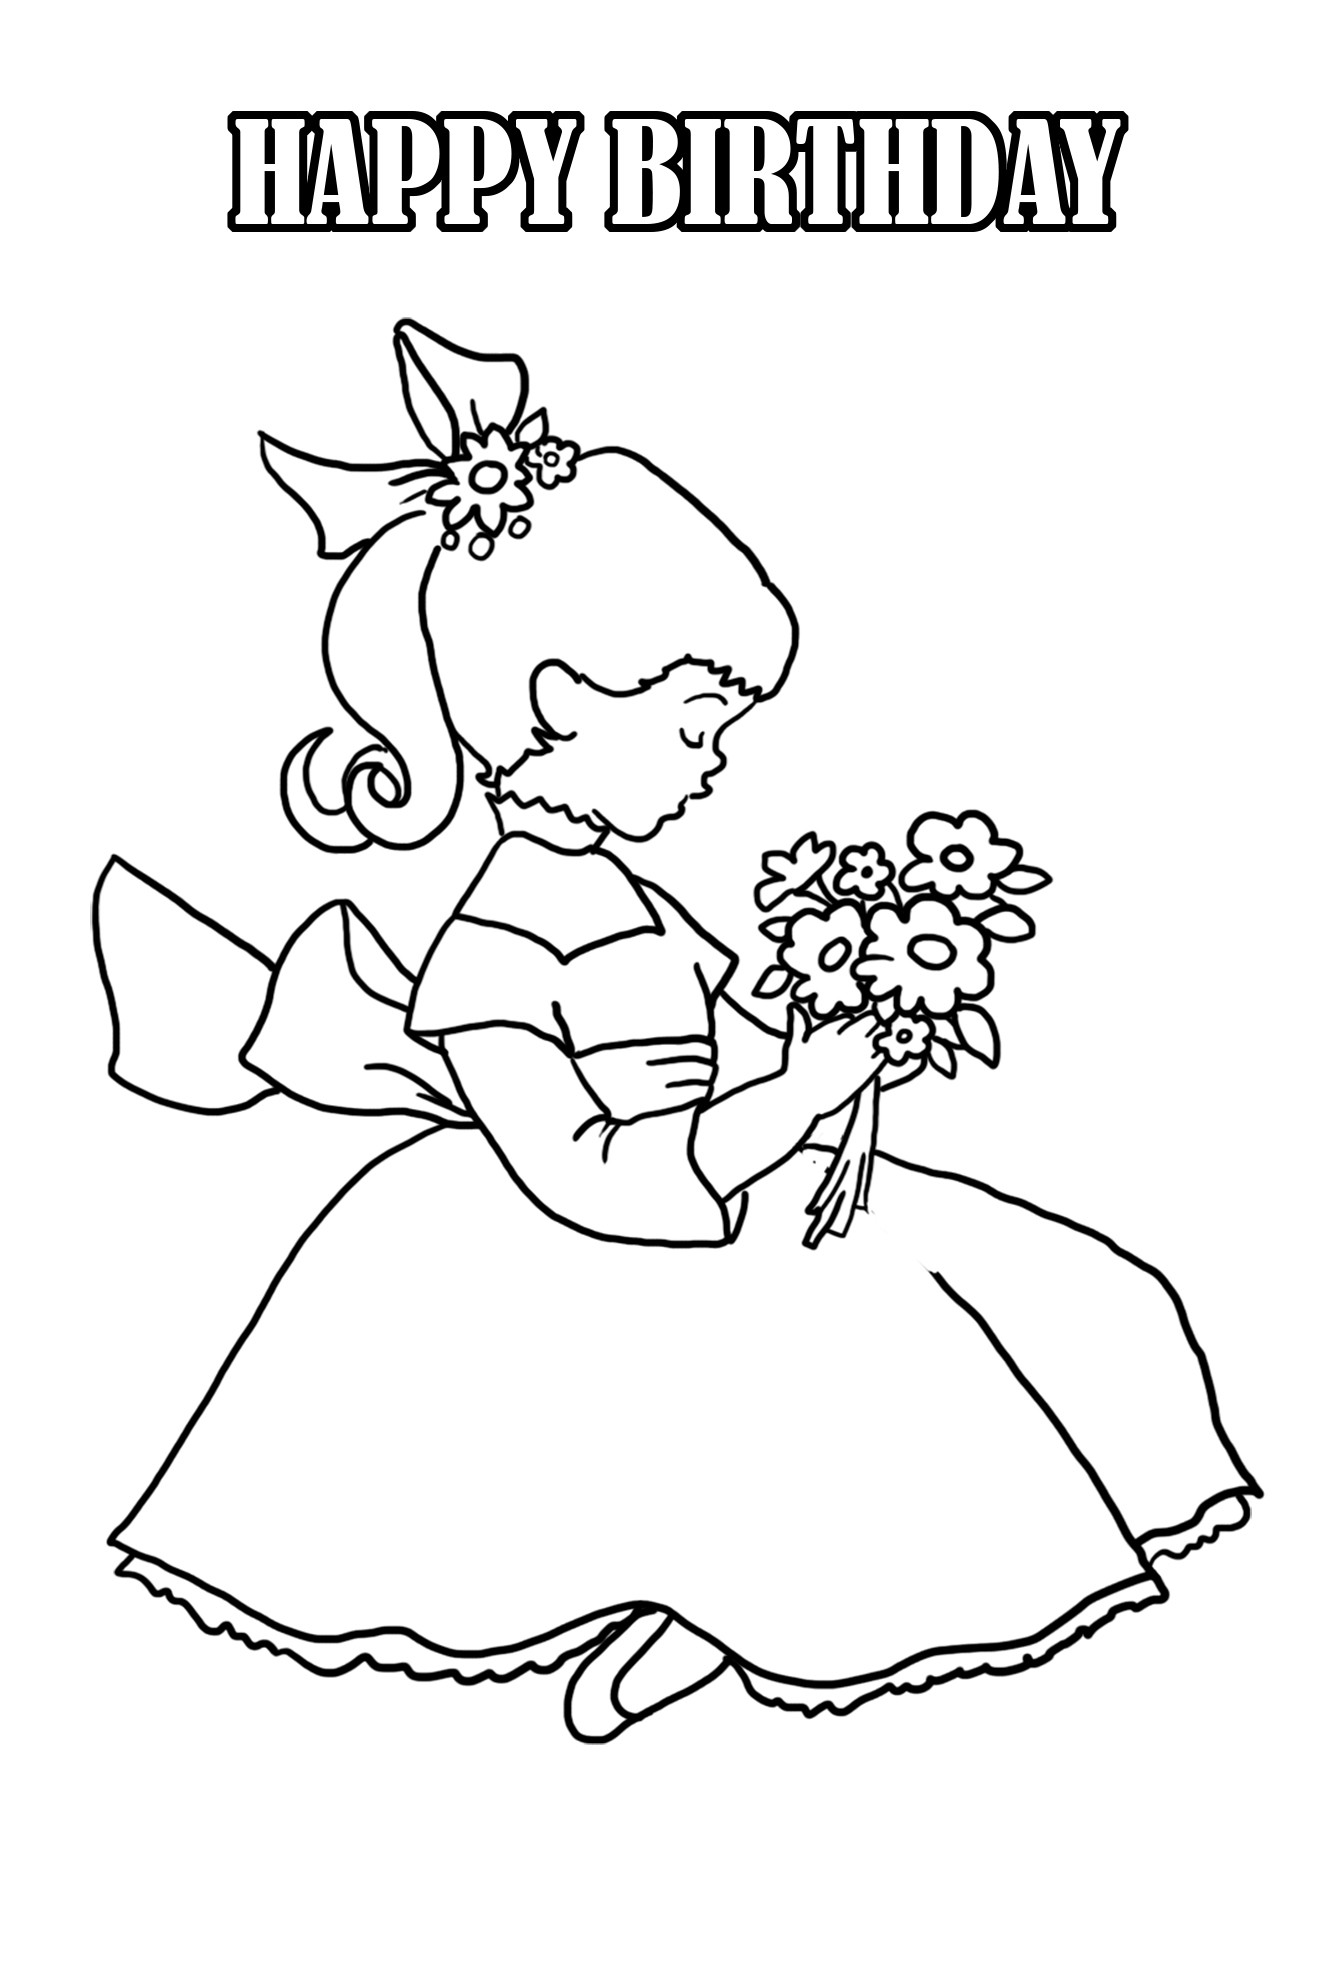 Coloring Sheets For Girls Birthday 10  Birthday Coloring Pages